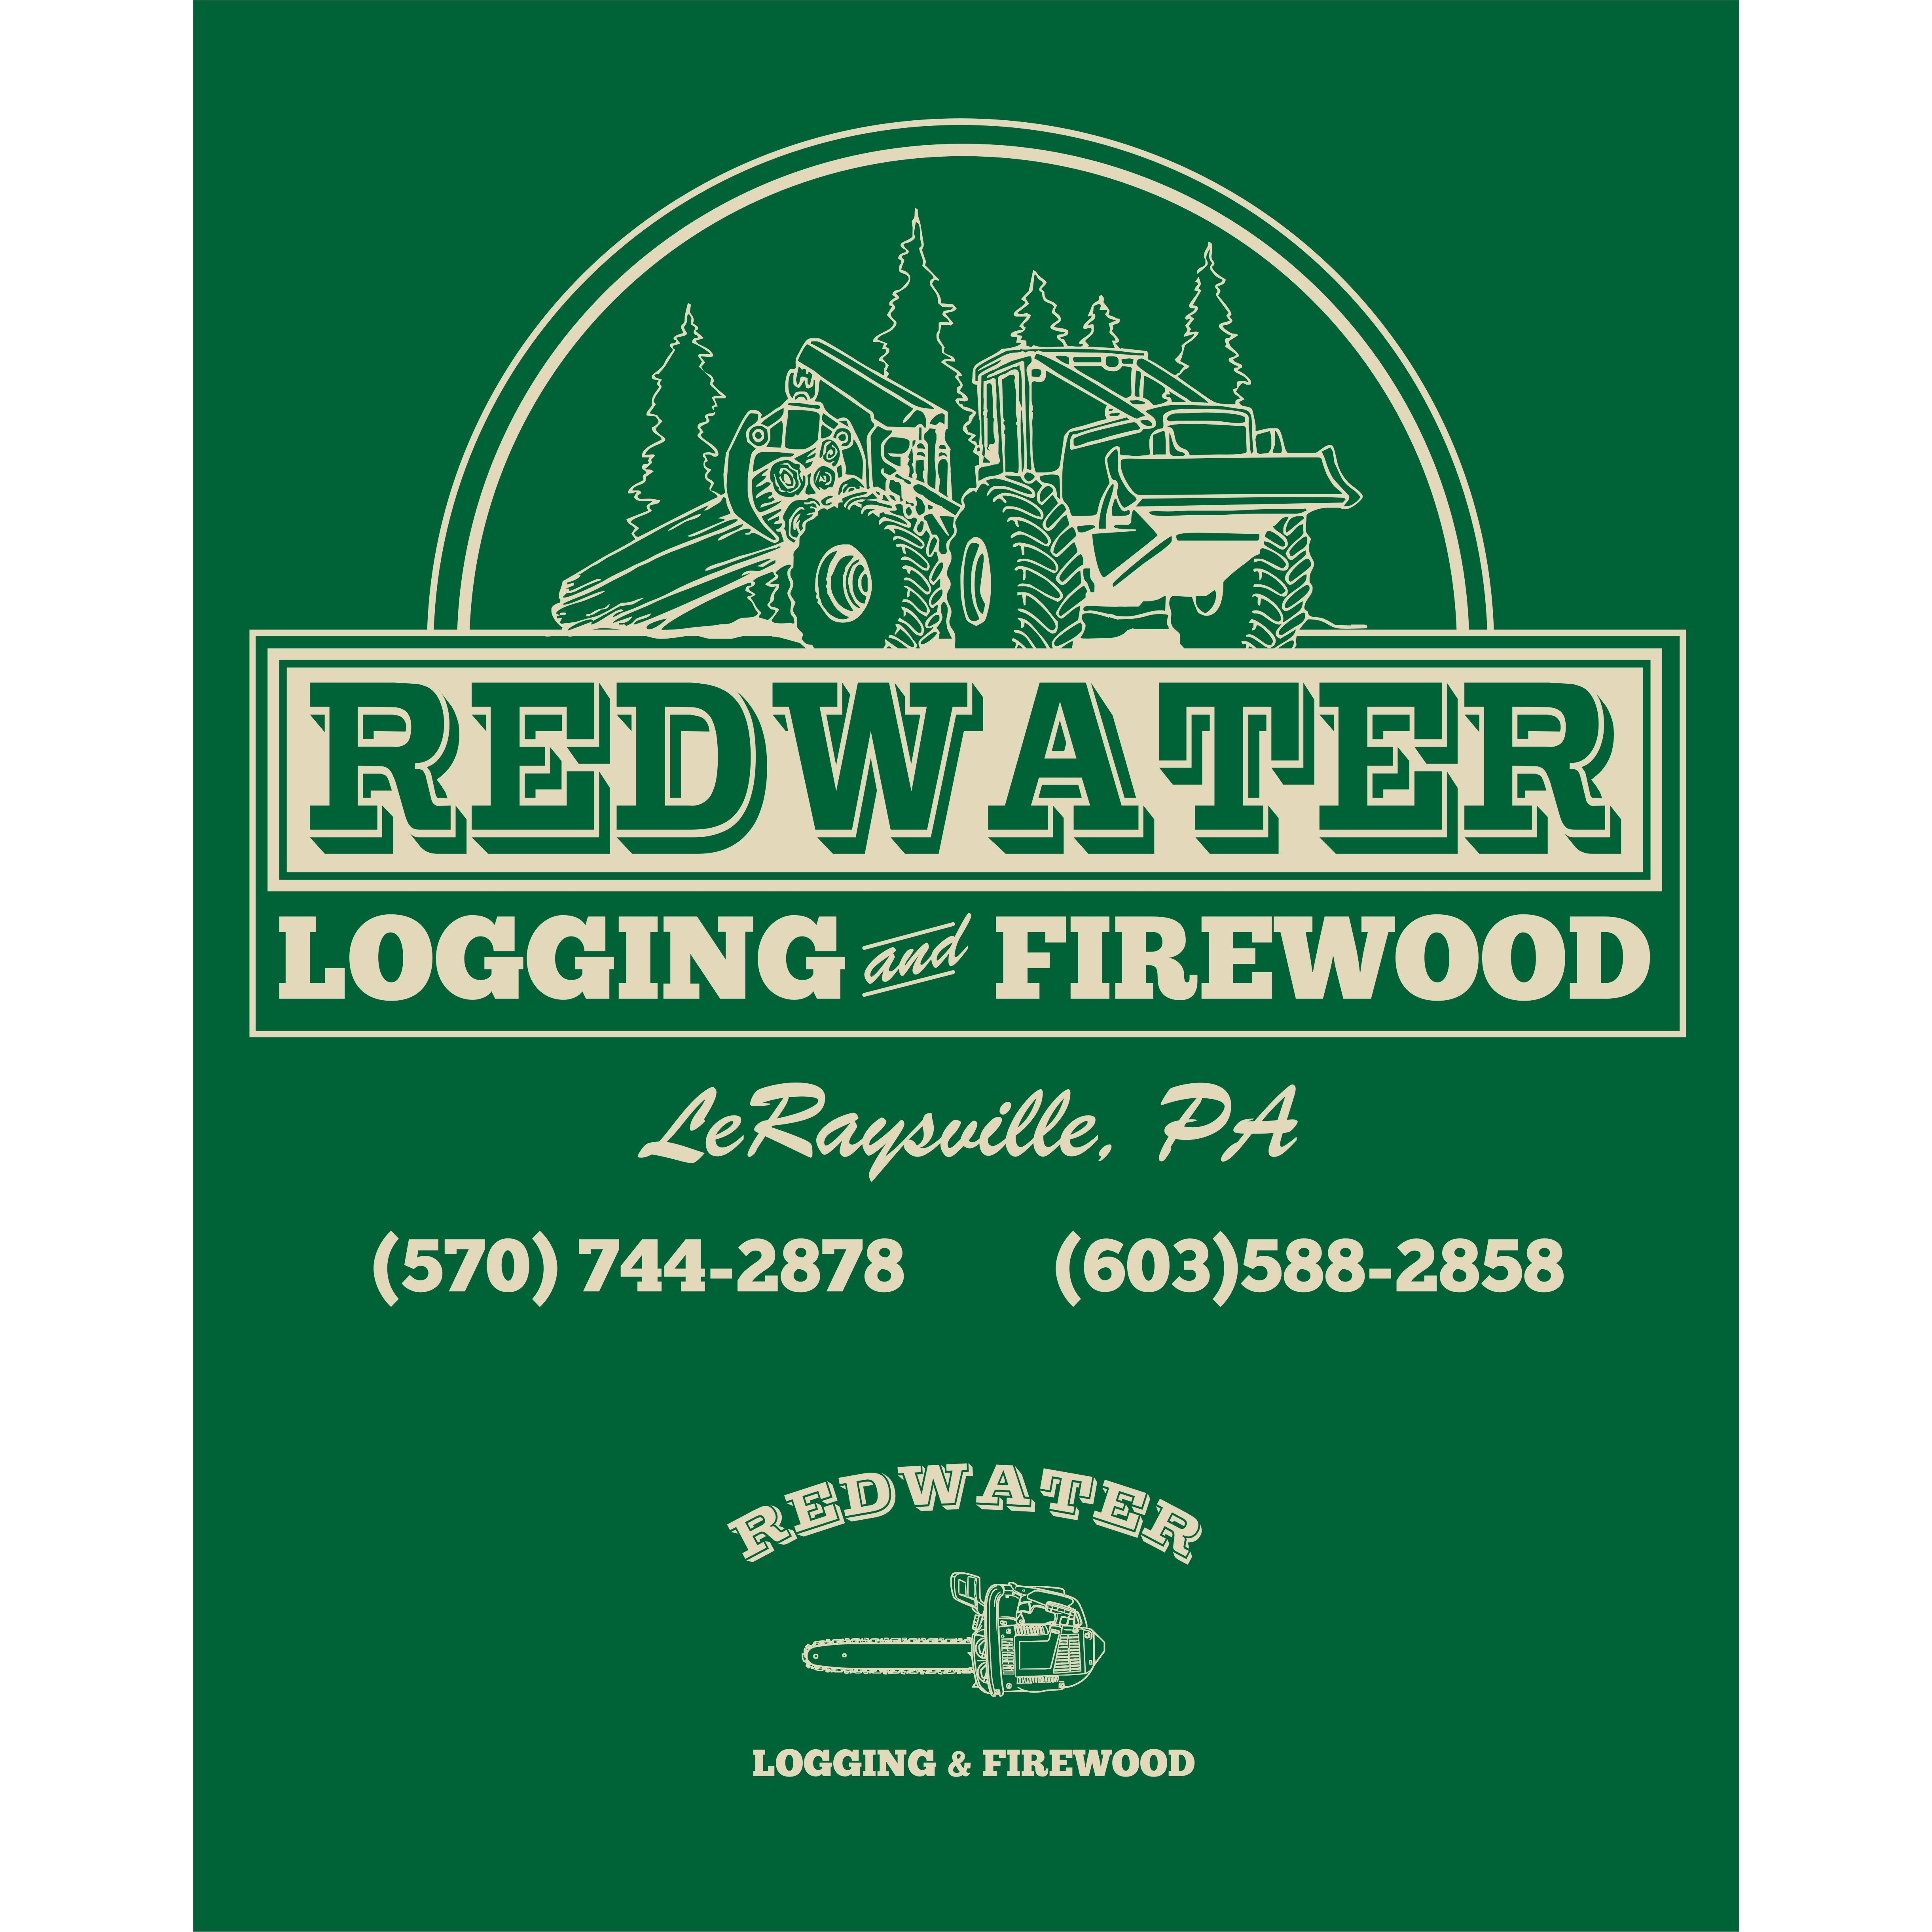 Redwater Logging and Firewood